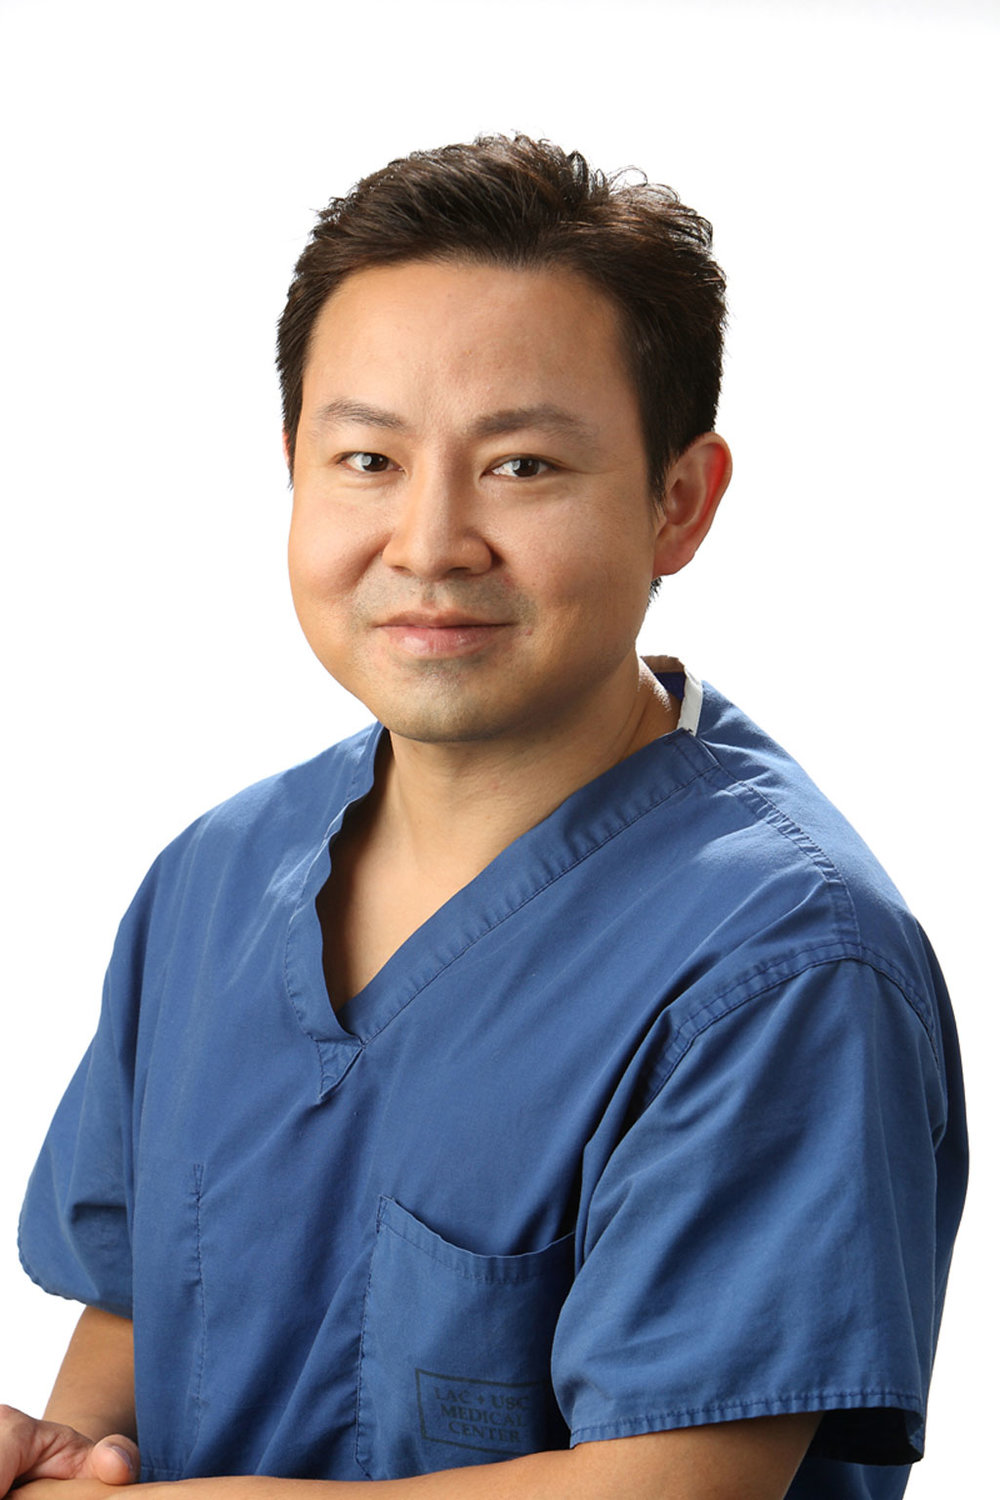 Charles Hsu, M.D. -  Originally from southern California, Dr. Hsu earned his MD from Harvard Medical School and completed his plastic surgery training at Stanford University Medical Center. He is board-certified by the American Board of Plastic Surgery. As an Active Member of the American Society of Plastic Surgeons, Dr. Hsu specializes in plastic surgery of the breast, body, and face. Prior to practicing in Beverly Hills, Dr. Hsu was a member of Stanford University's clinical faculty and on staff at Santa Clara Valley Medical Center, where he taught and supervised the next generation of doctors and plastic surgeons. He received the Stanford University School of Medicine teaching award for his clinical instruction of the medical students. In addition, he has published academic papers in the journals of Plastic & Reconstructive Surgery and Aesthetic Plastic Surgery, on topics such as facelifts, rhinoplasty, and other aspects of plastic surgery.